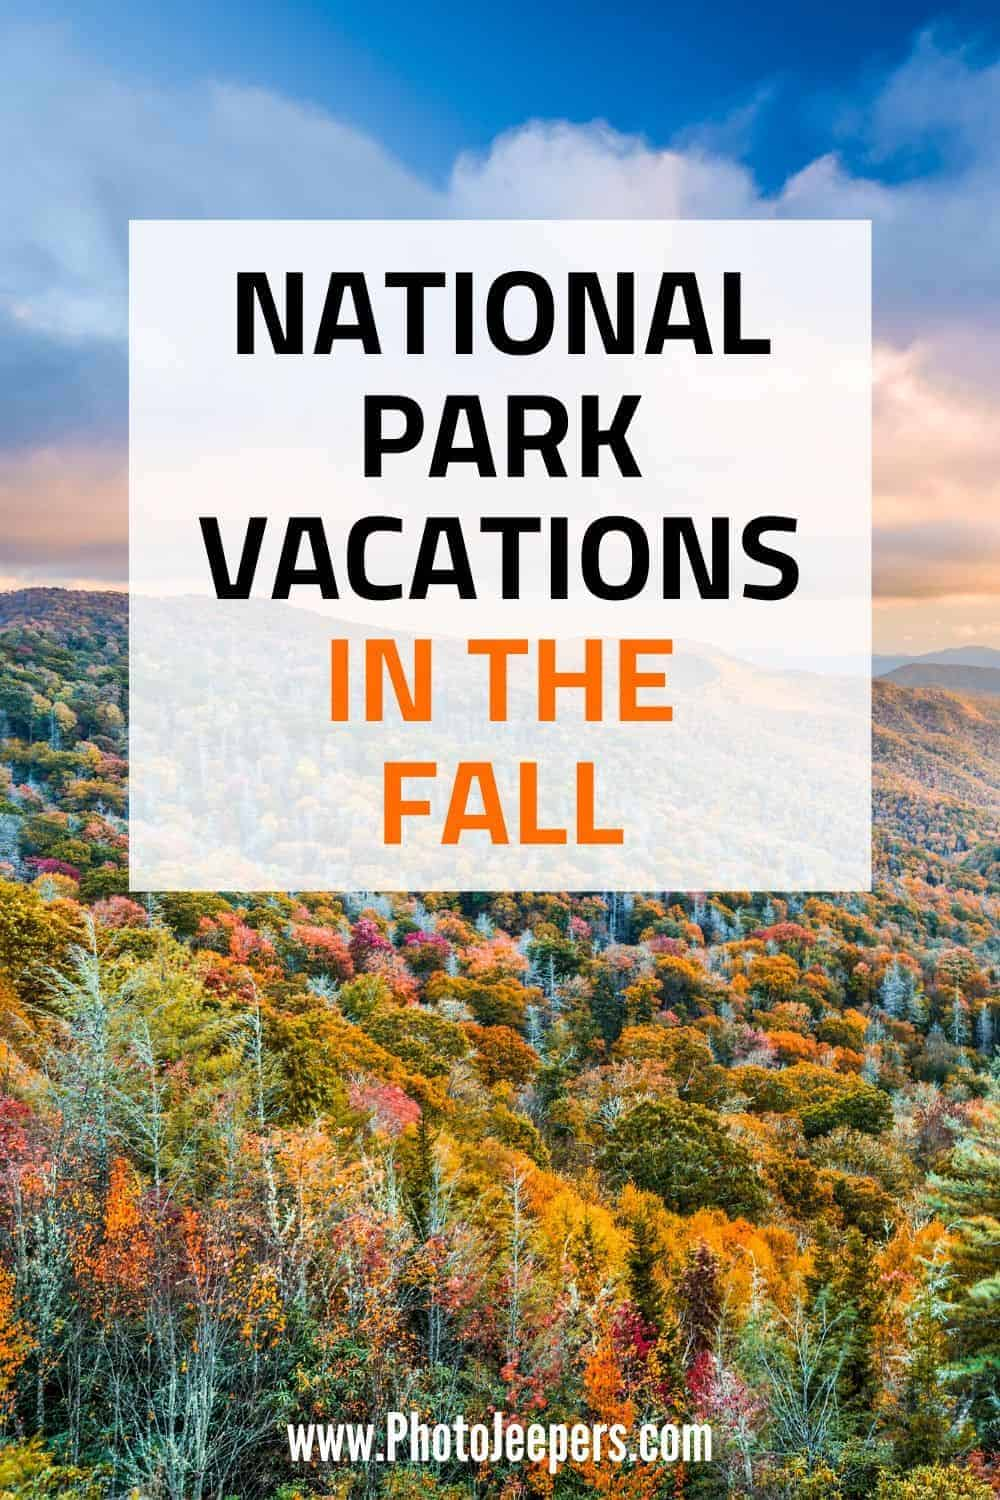 National Park Vacations in the Fall: Best US National Parks to visit in the Fall | What to pack for a fall National Park vacation | National Park travel planning resources #nationalparks #falltravel #usatravel #photojeepers